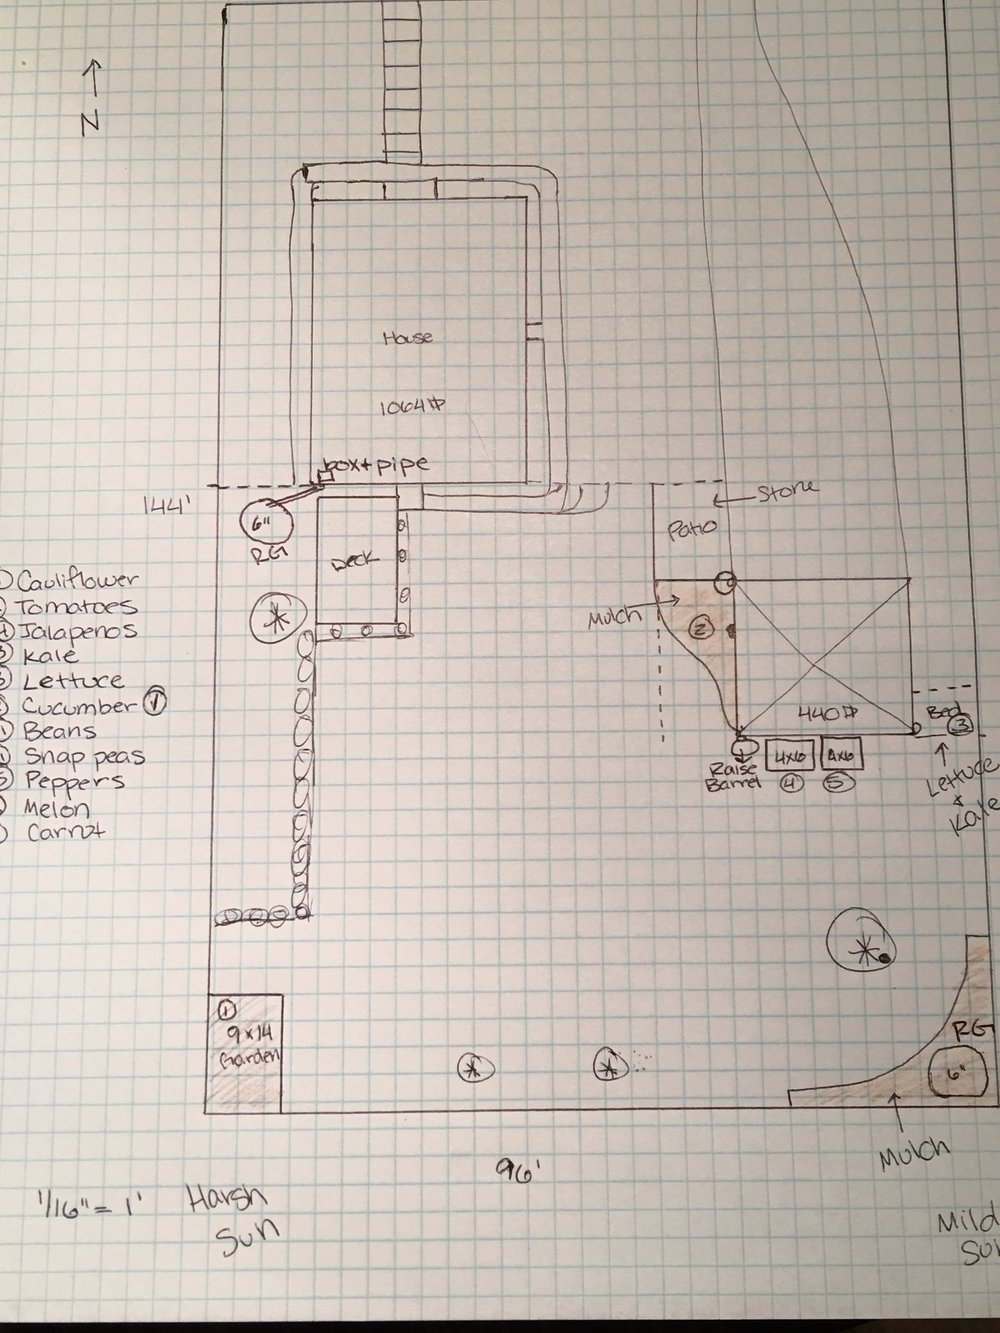 Preliminary sketches of the rain garden (RG) installations in my backyard